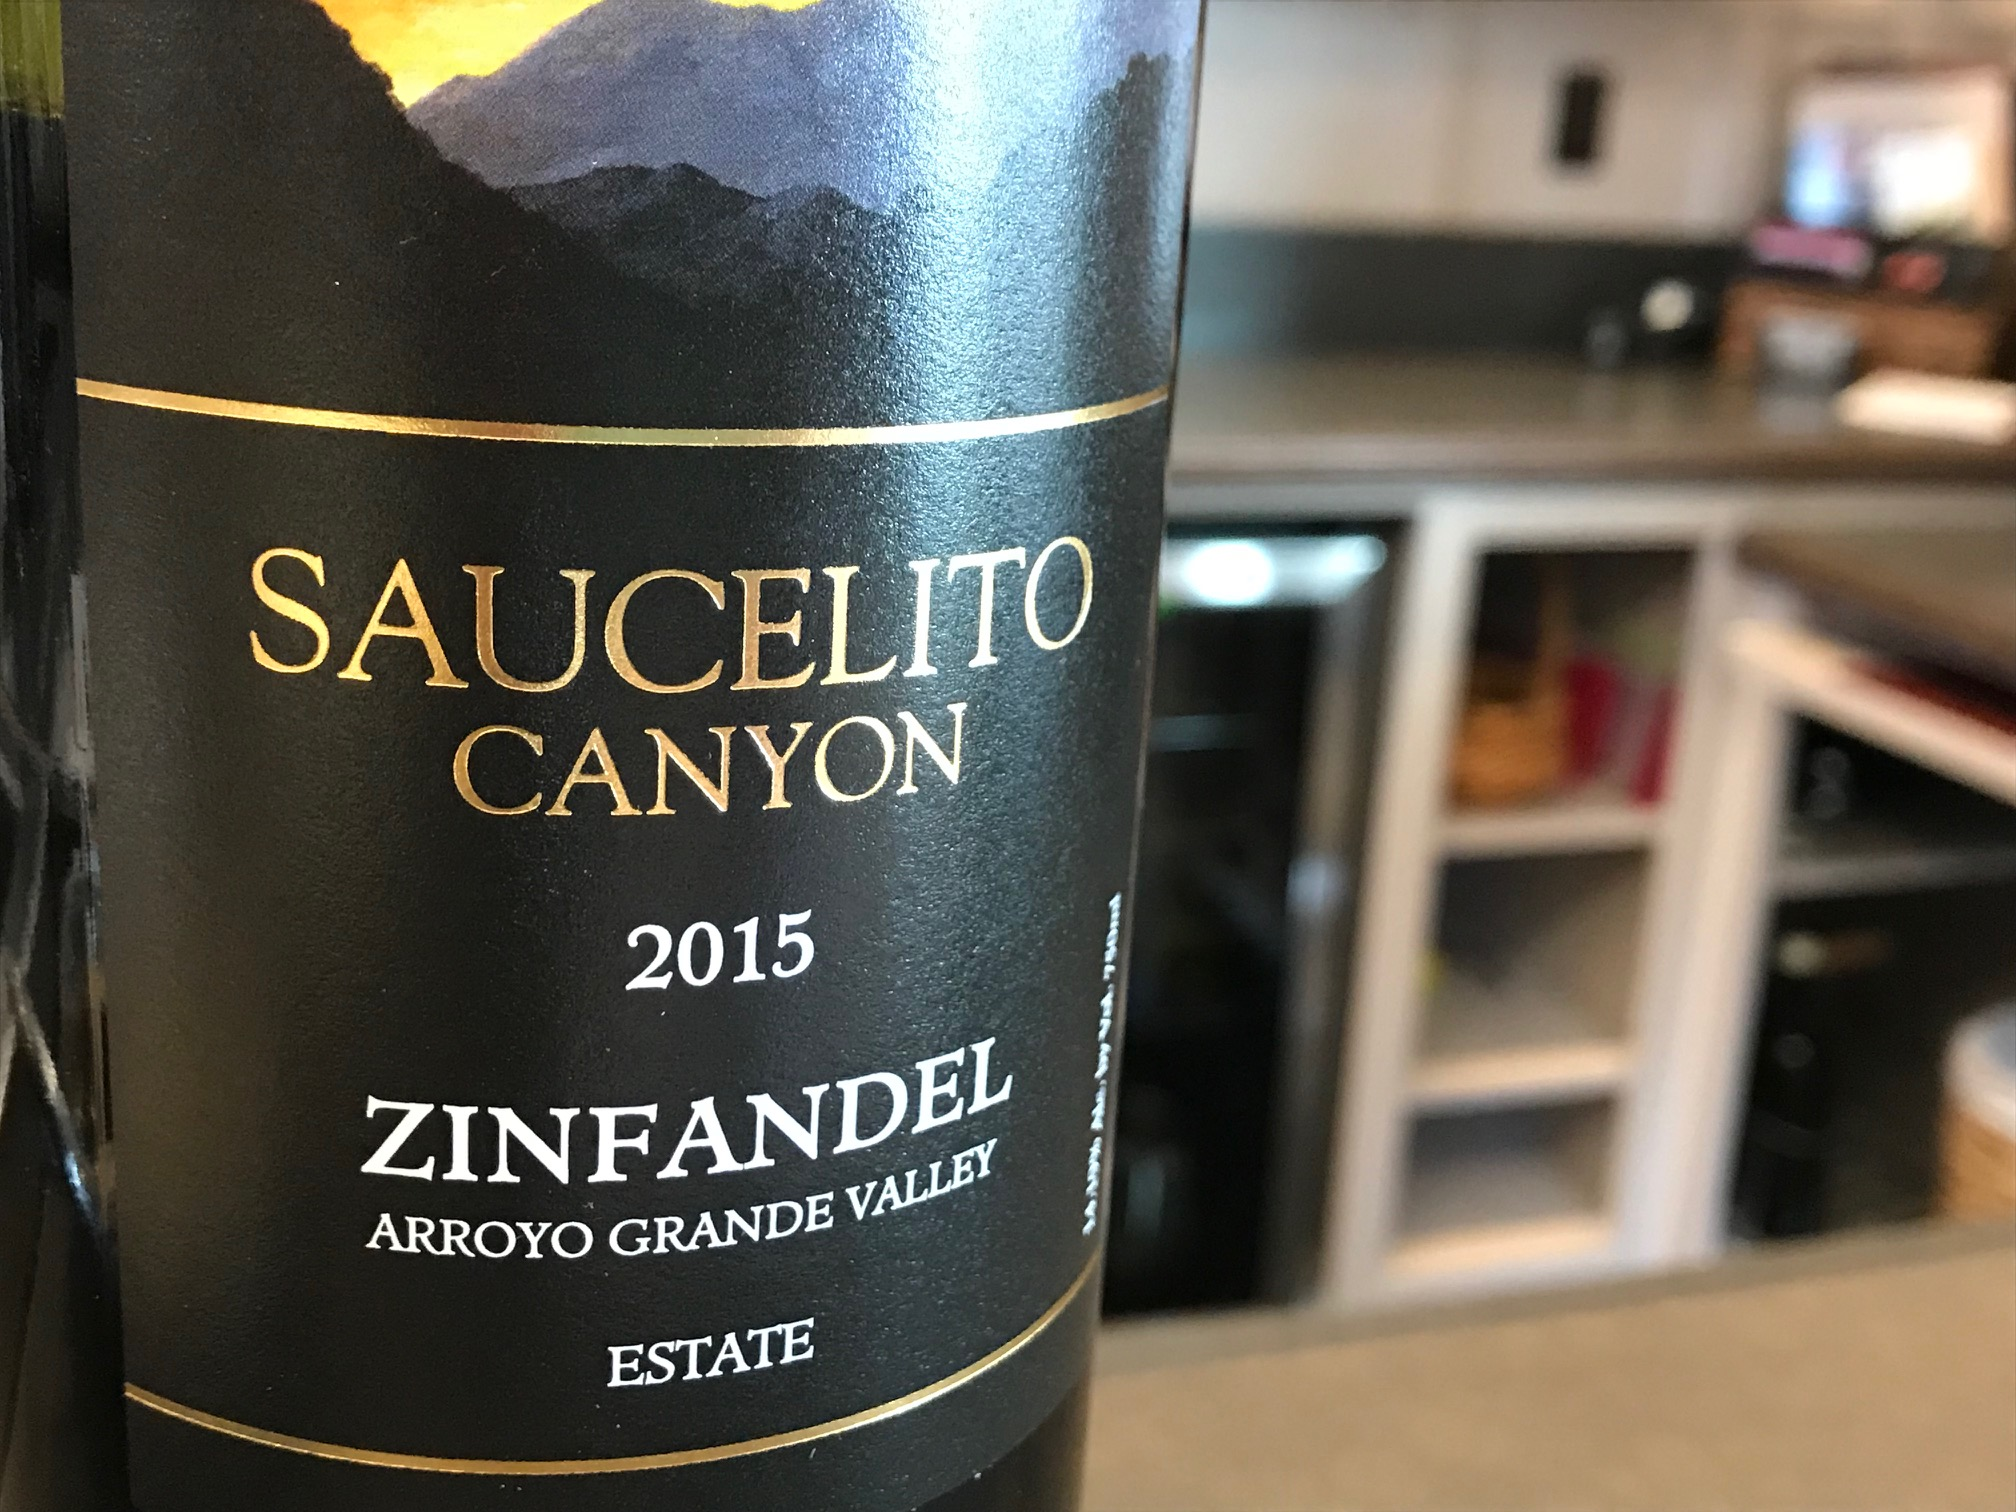 Estate Zinfandel bottle image